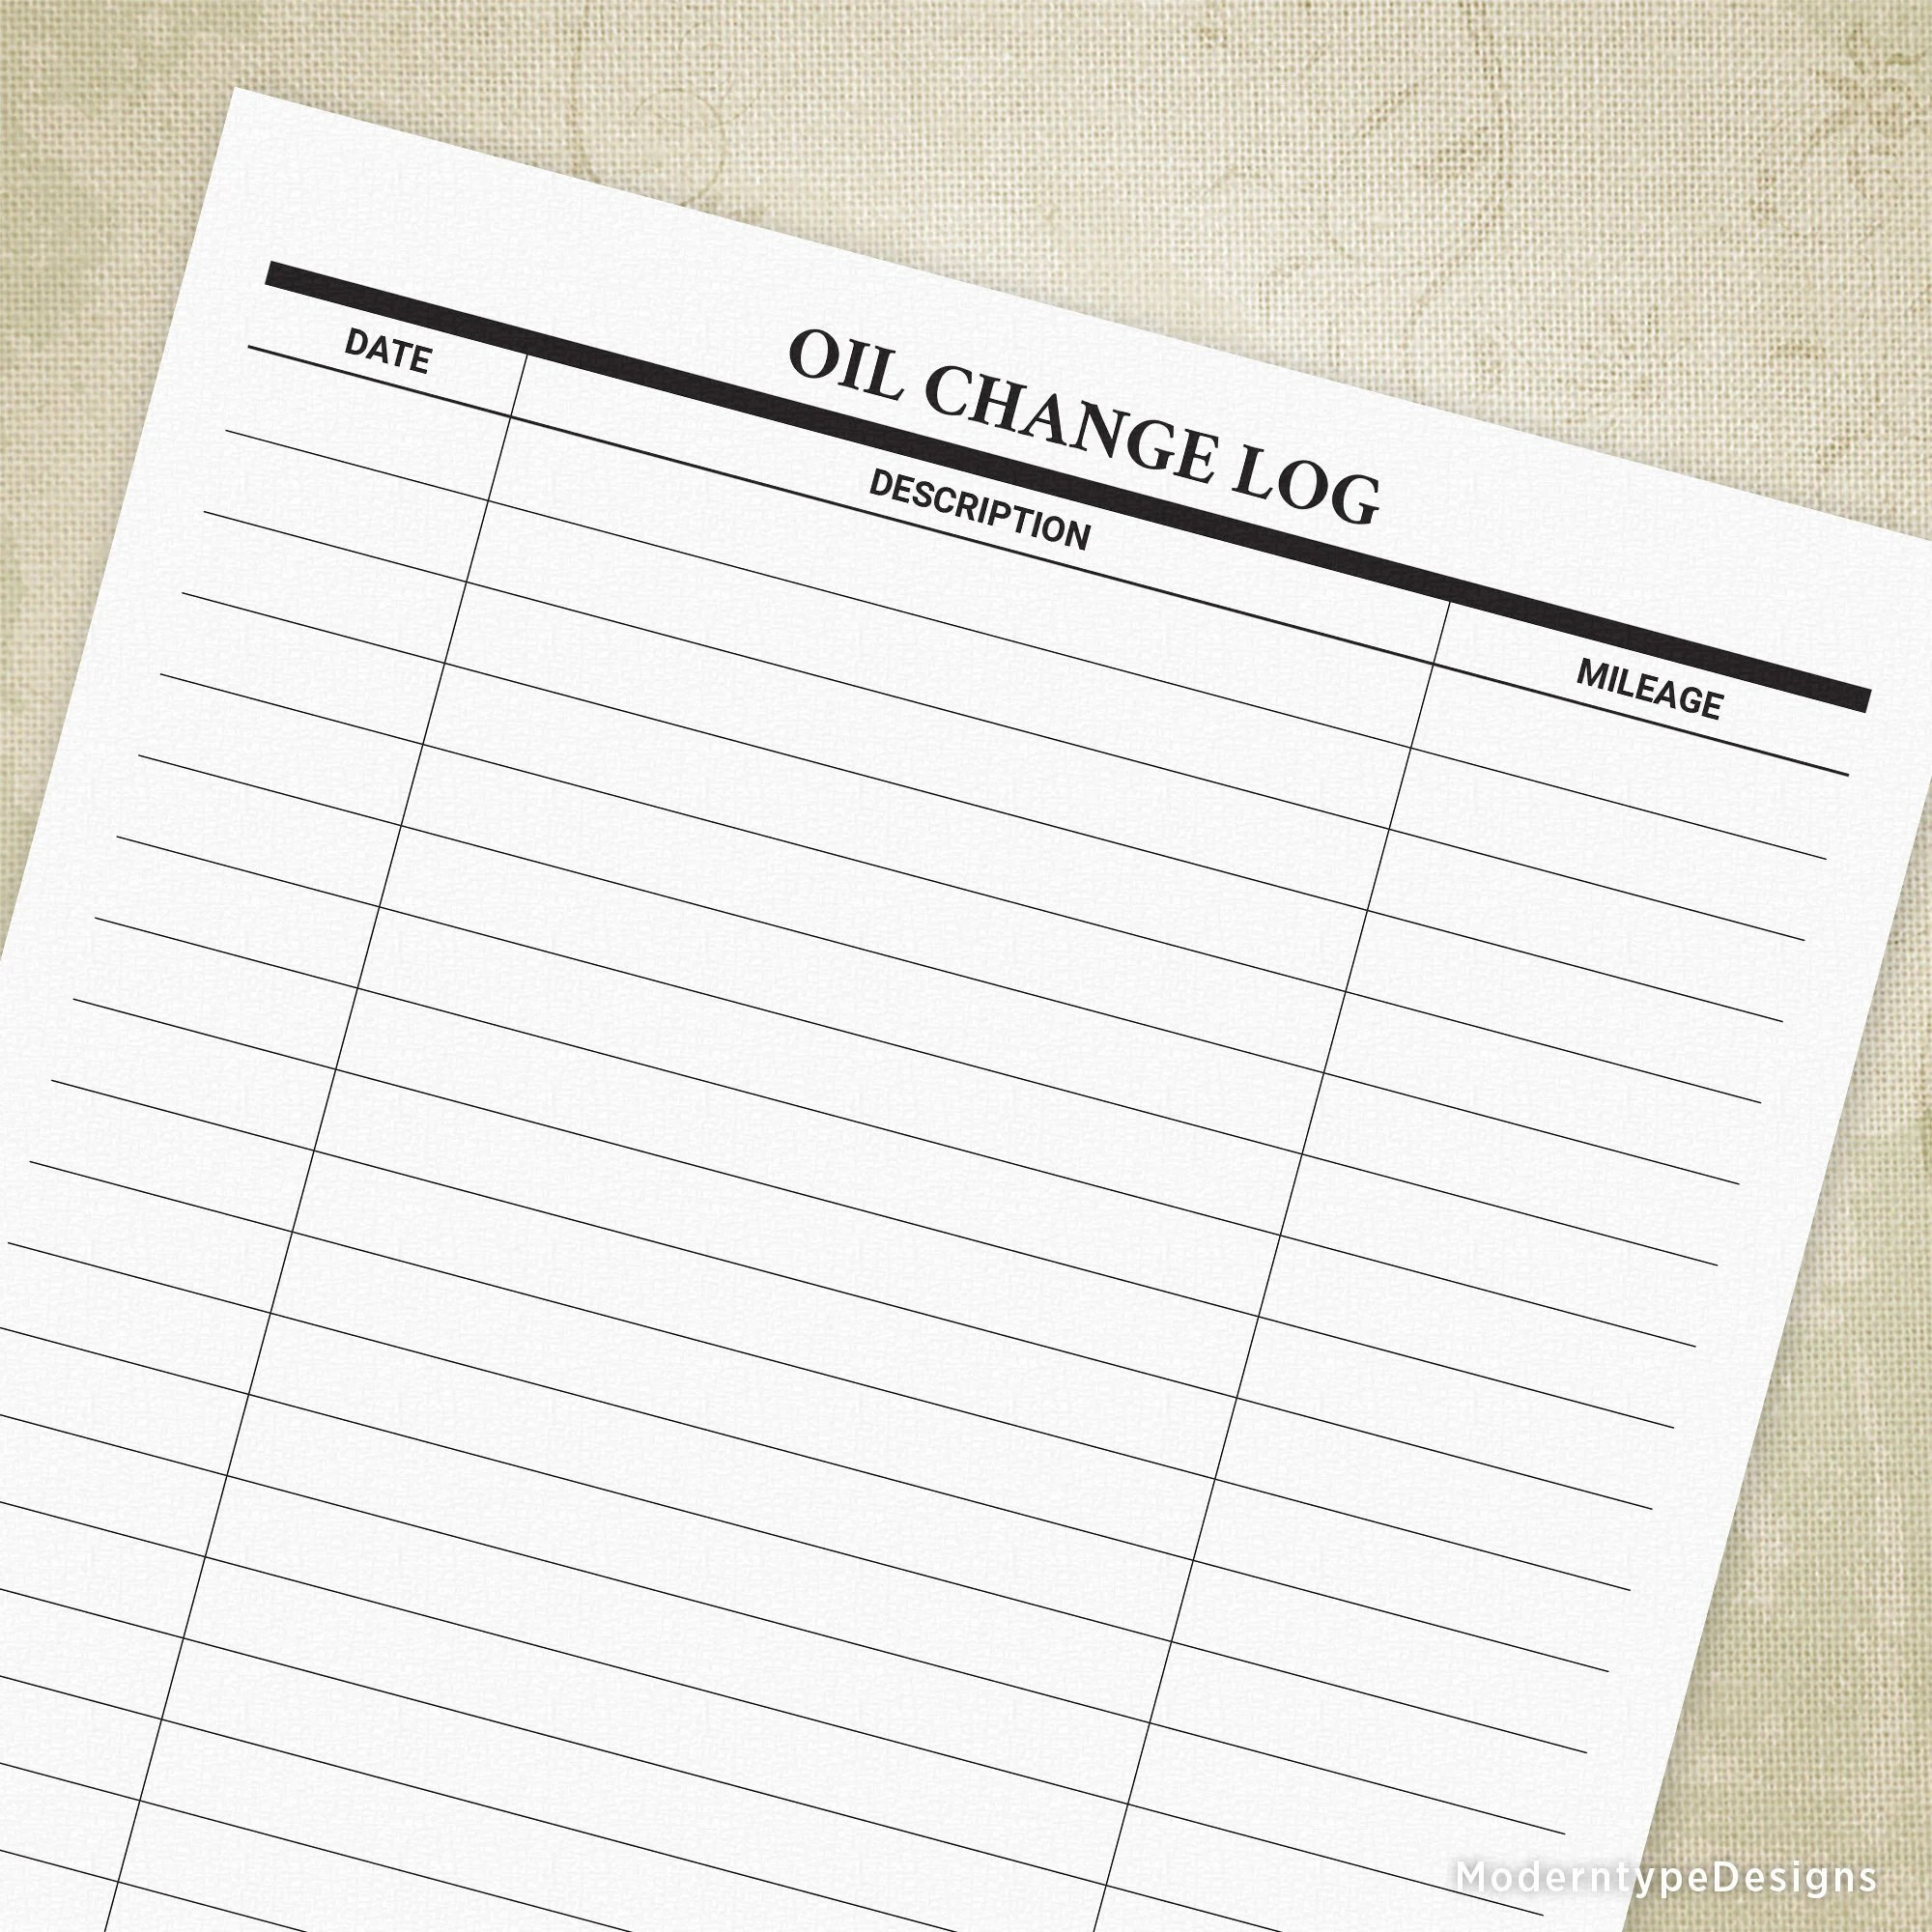 Christopher neiger so how often should you replace your engine's oil? Oil Change Log Printable Form Car Maintenance Tracker Mower Etsy